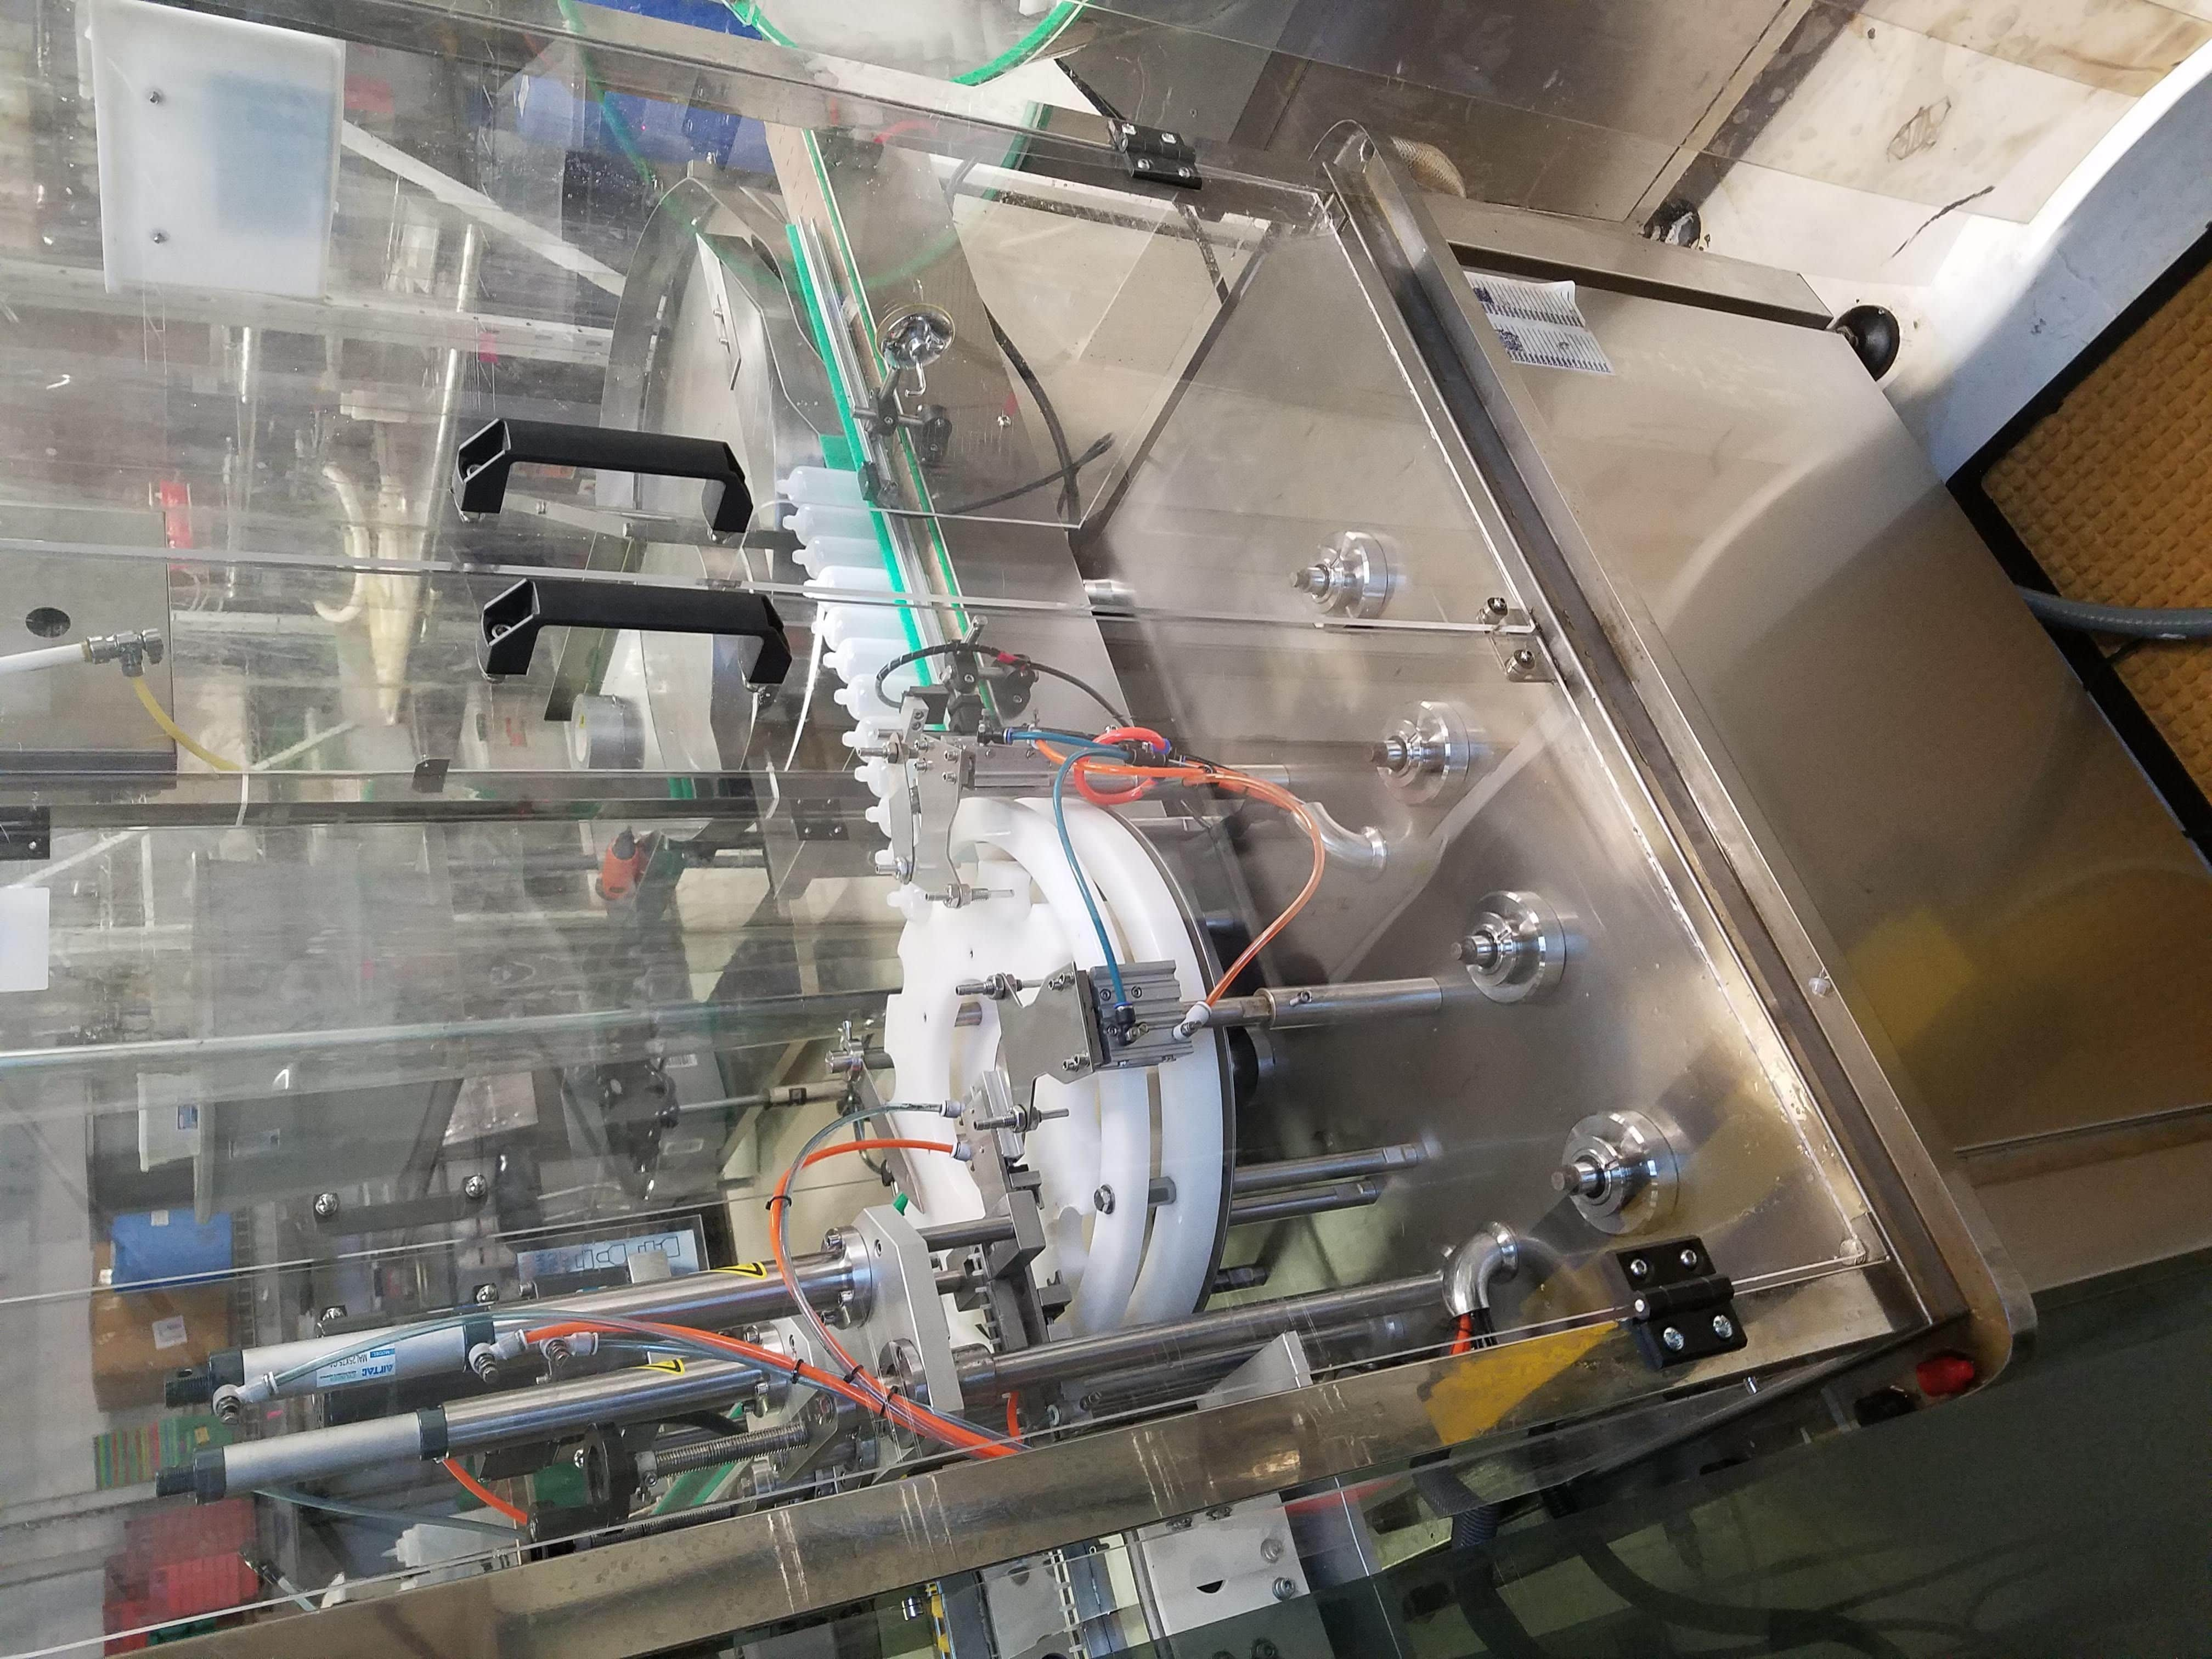 Complete plastic / glass boston round bottle automated fillng, droppering, and capping machine. Siemens Smart Line and Mistubishi PLC controlled. Comes with various spare parts.